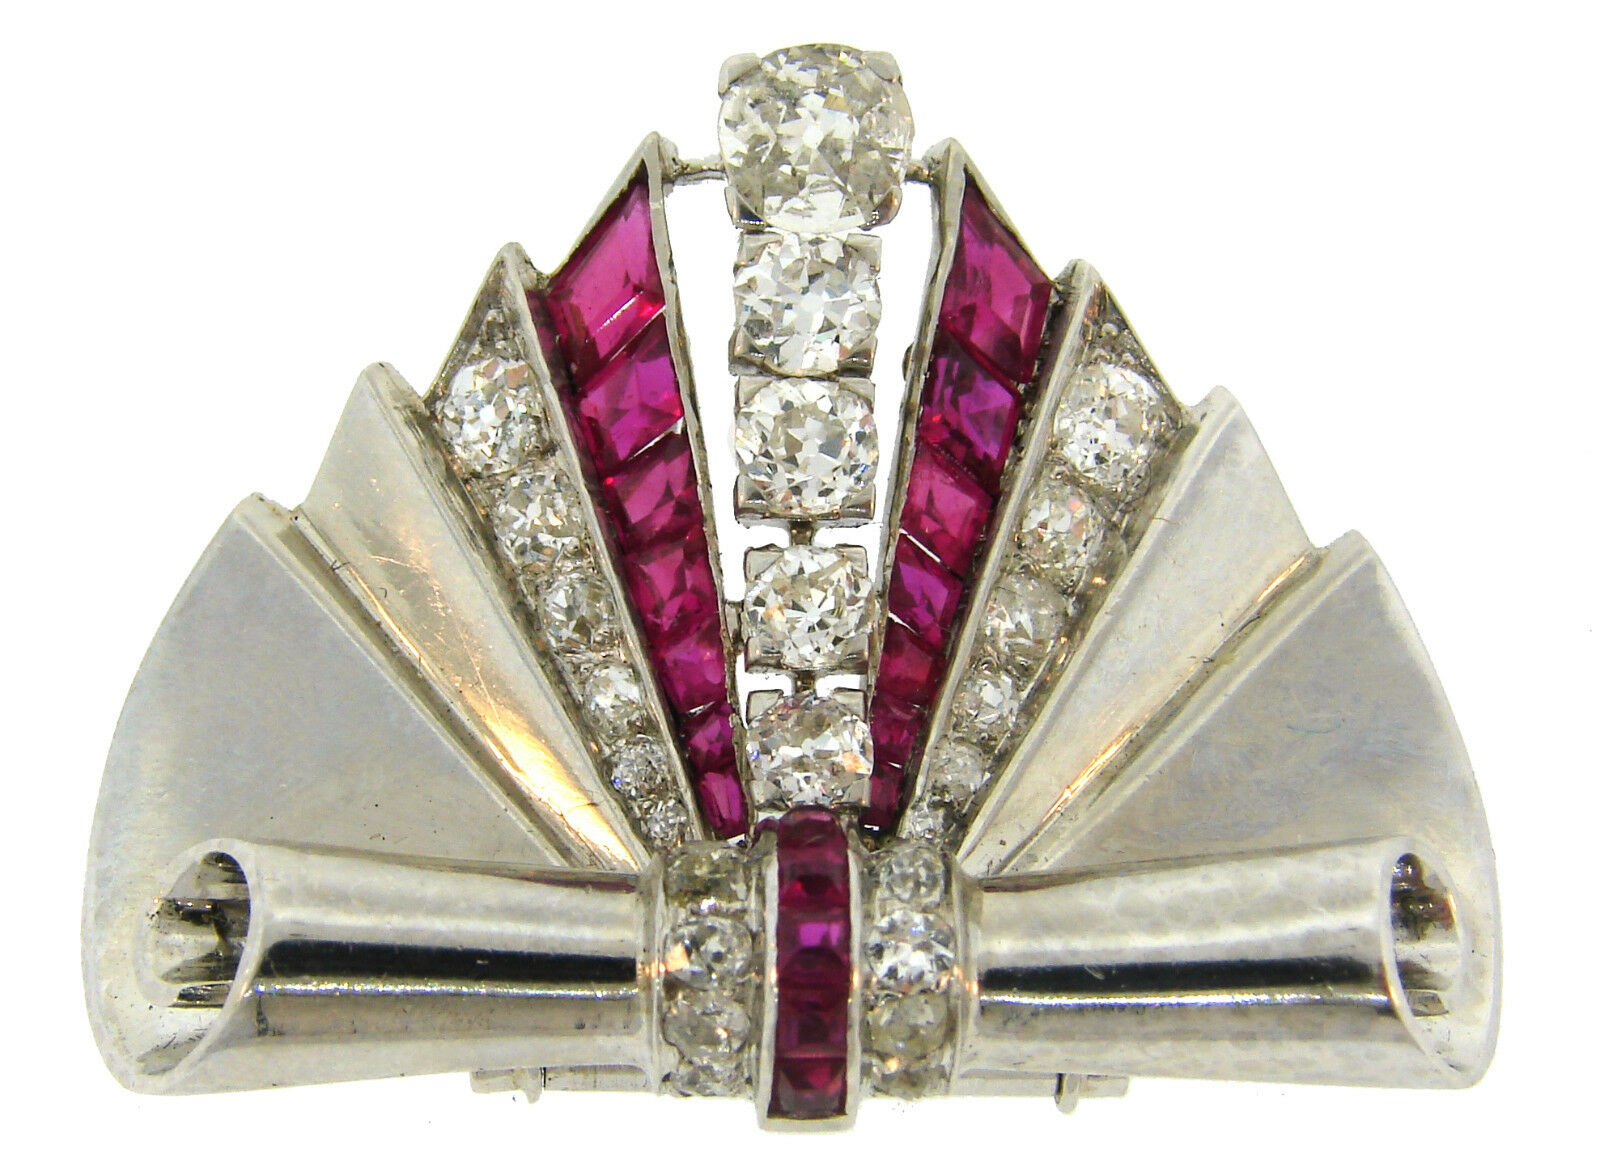 Antique Art Deco Sterling Silver Jewelry